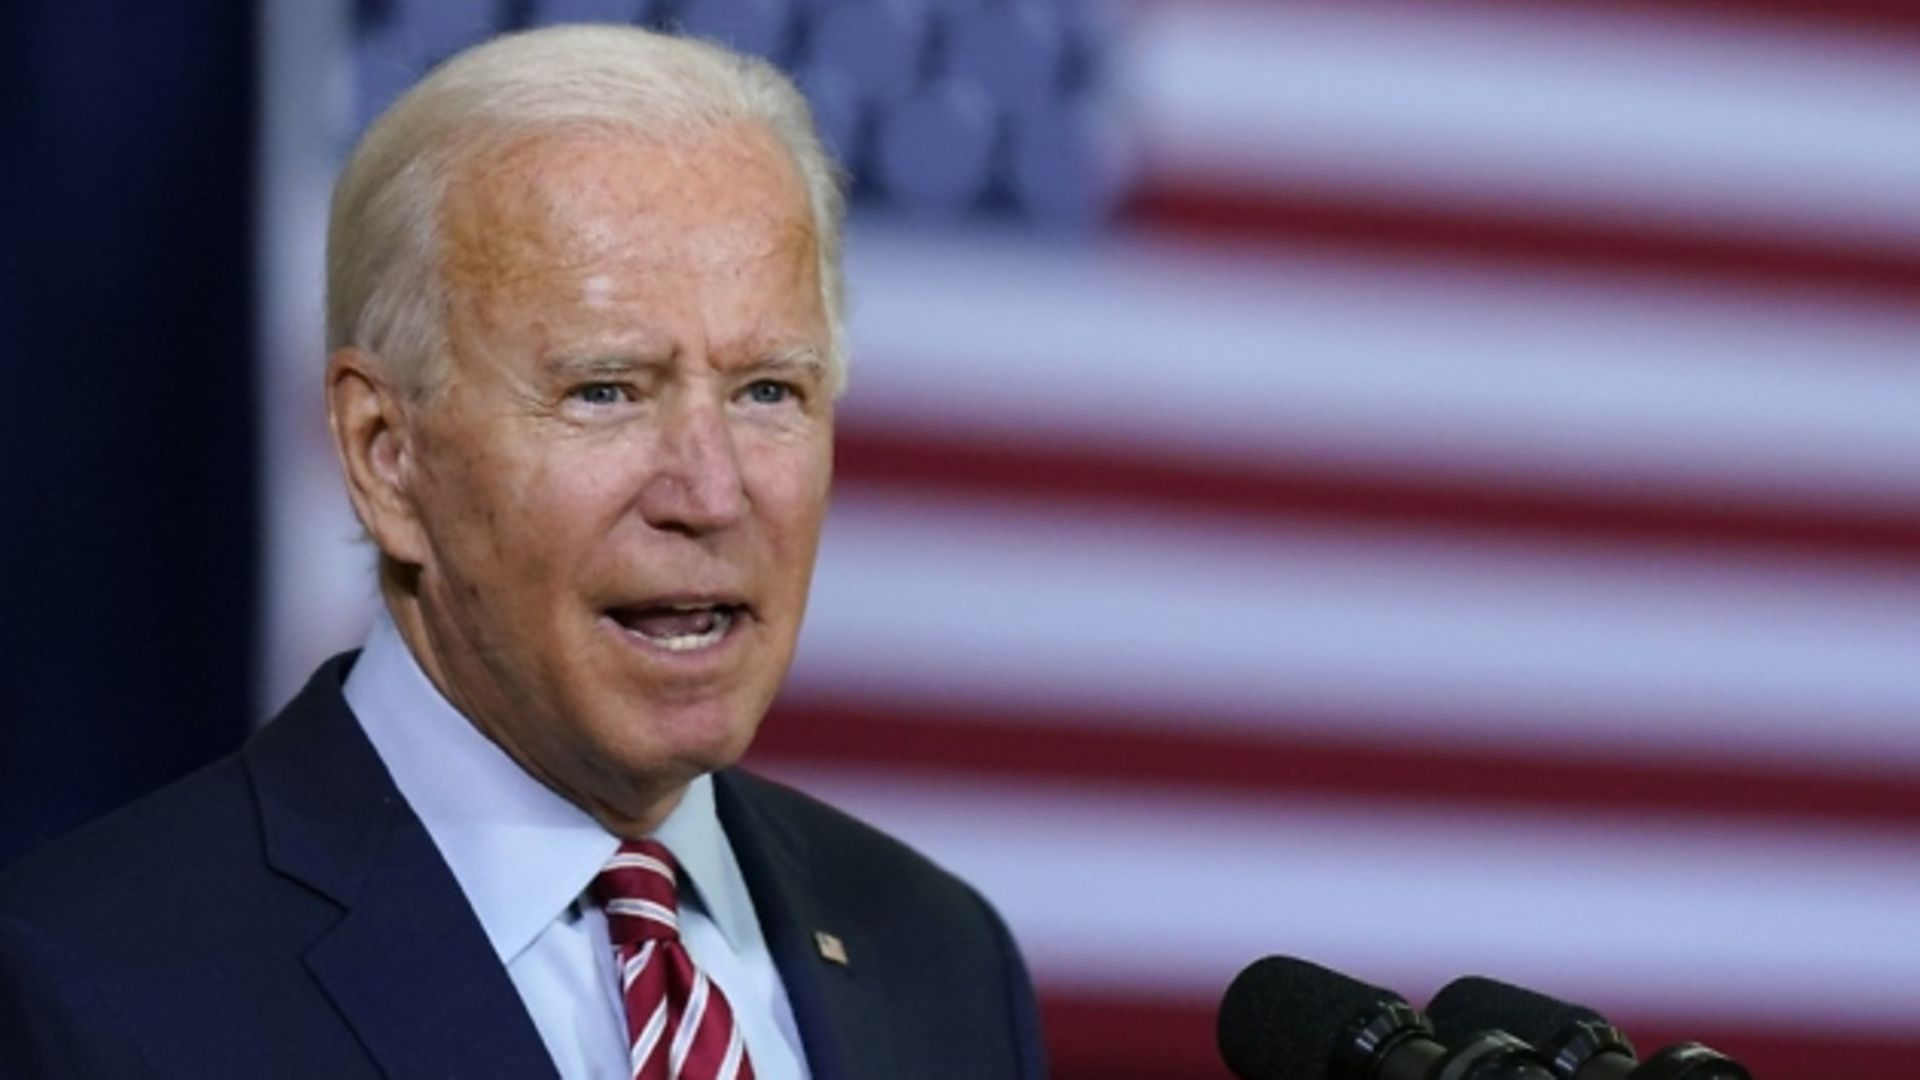 Democratic presidential candidate Joe Biden speaks before participating in a roundtable discussion with veterans. Photograph: AP Photo/Patrick Semansky.